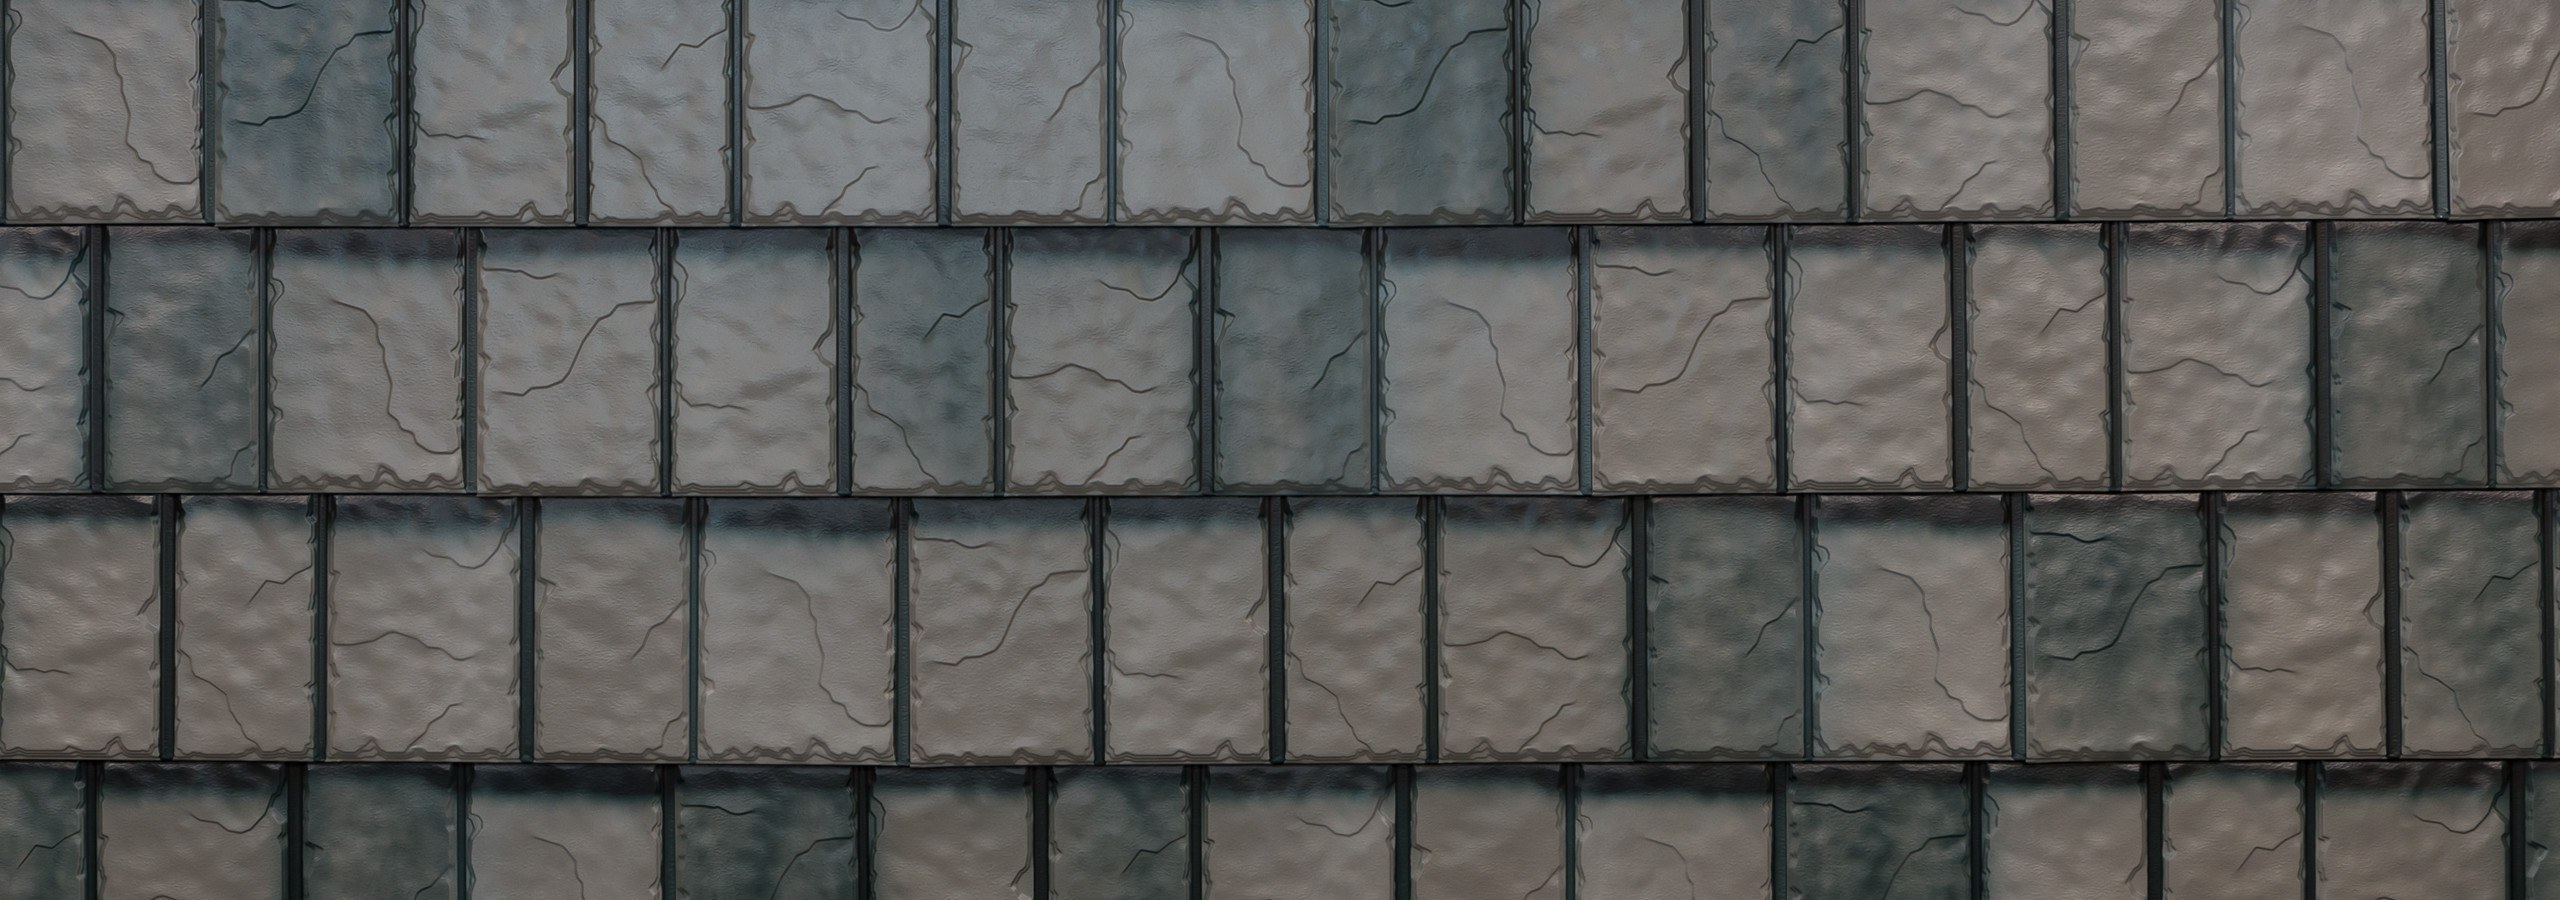 Charcoal gray/grey steel slate roofing